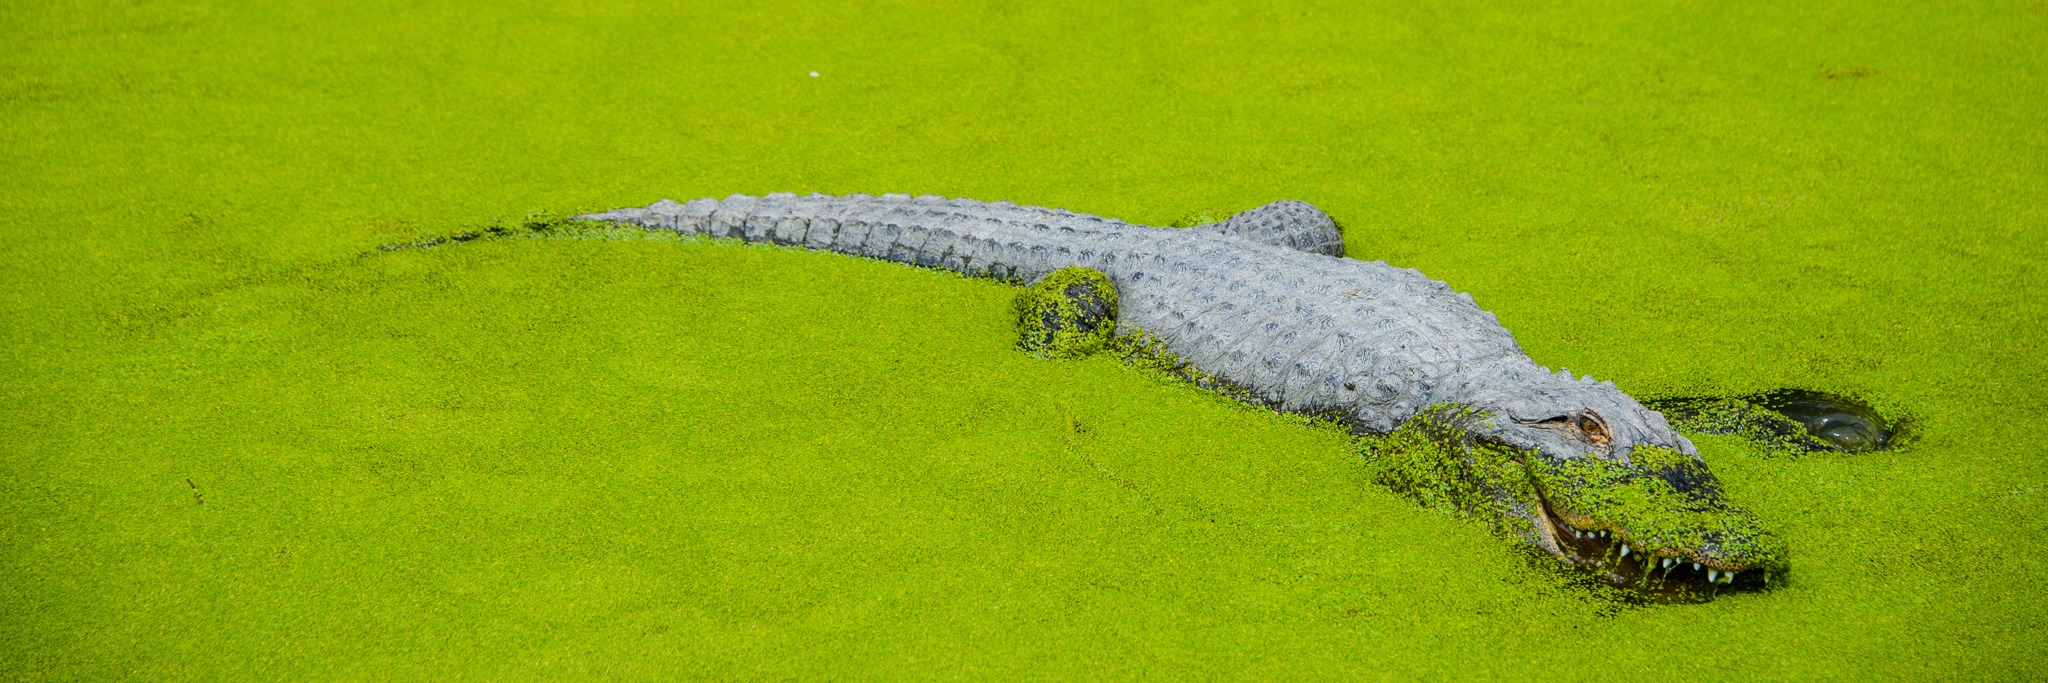 This alligator is snacking on duckweed that grows in one of the large enclosure ponds.